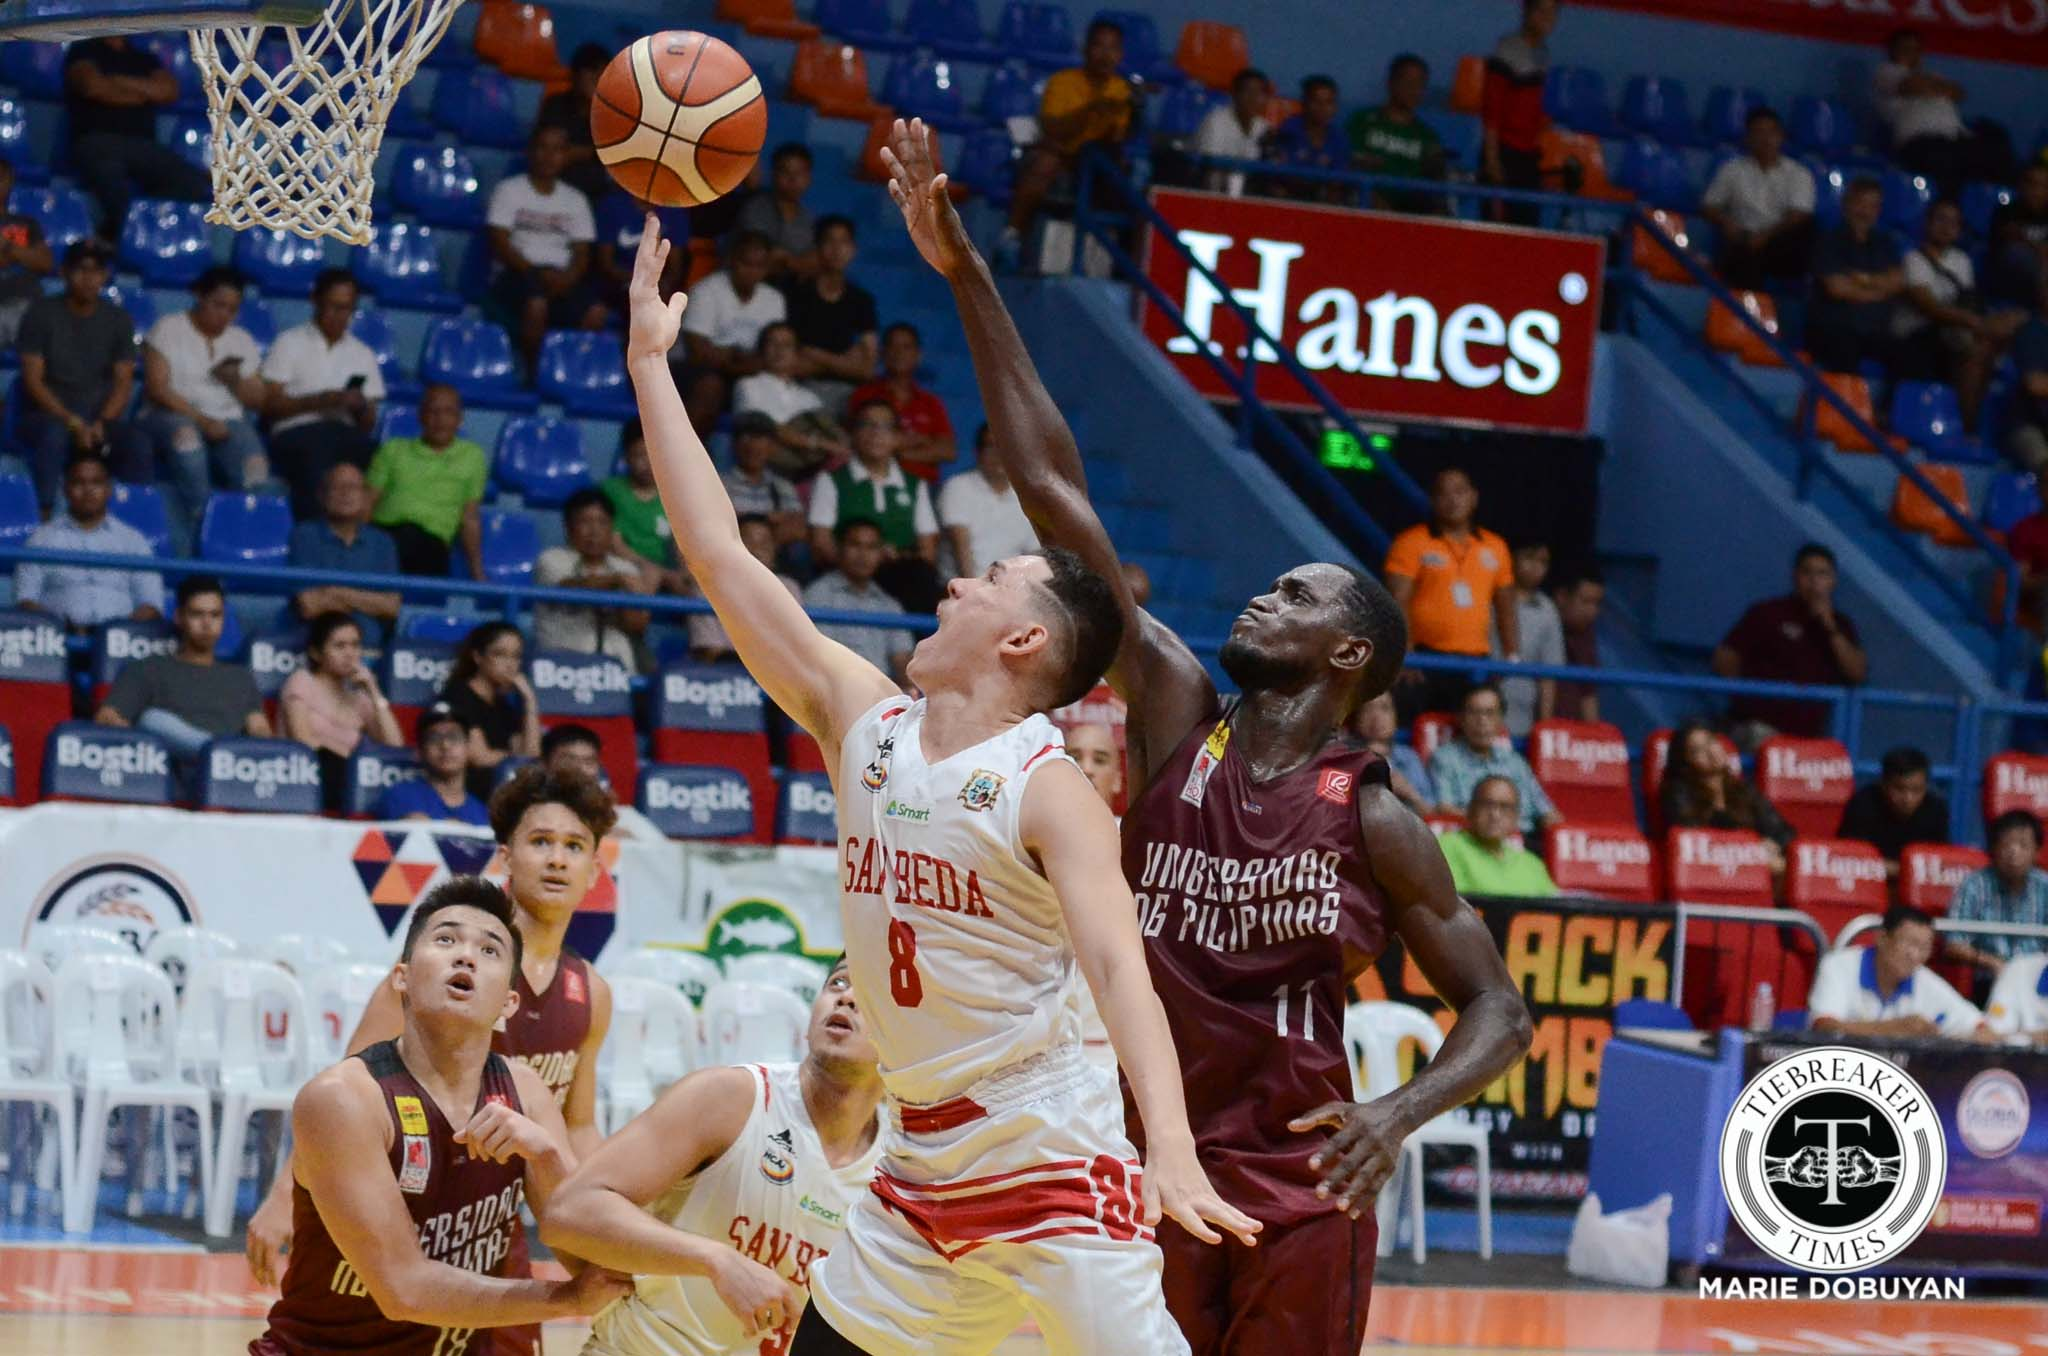 Tiebreaker Times UP to appeal Ouattara's and Ricafort's ineligibility Basketball News UAAP UP  UP Men's Basketball UAAP Season 80 Men's Basketball UAAP Season 80 Ronnie Dizer Rob Ricafort Ibrahim Ouattara Bo Perasol